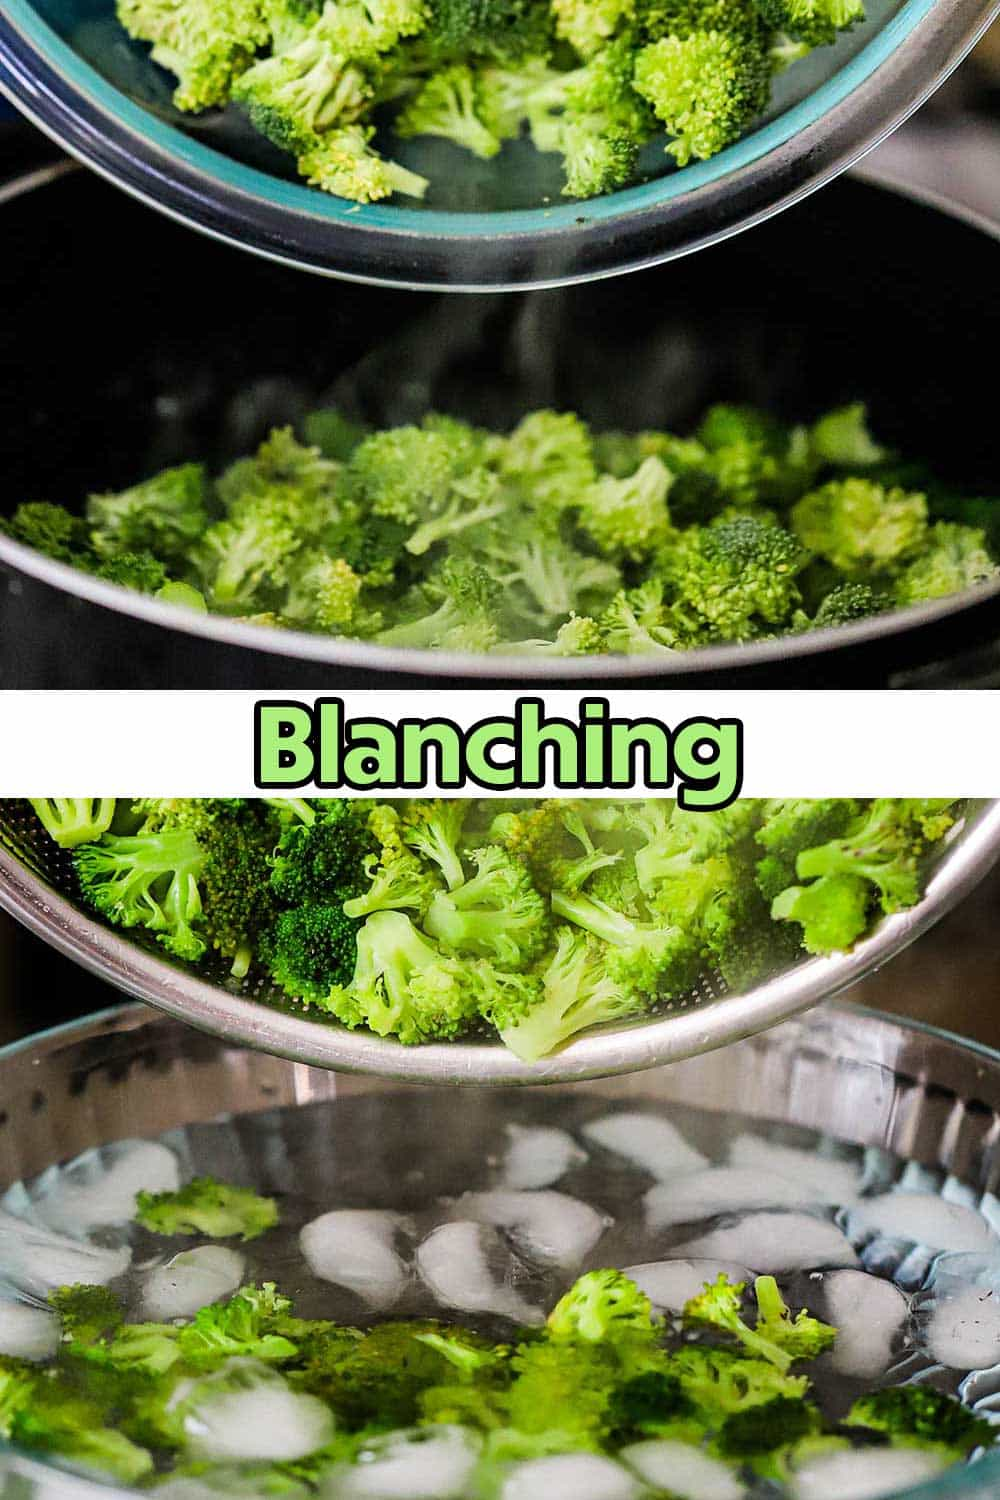 Broccoli florets being dropped from a glass bowl into a pot of boiling water and then the florets being transferred into an ice batch.